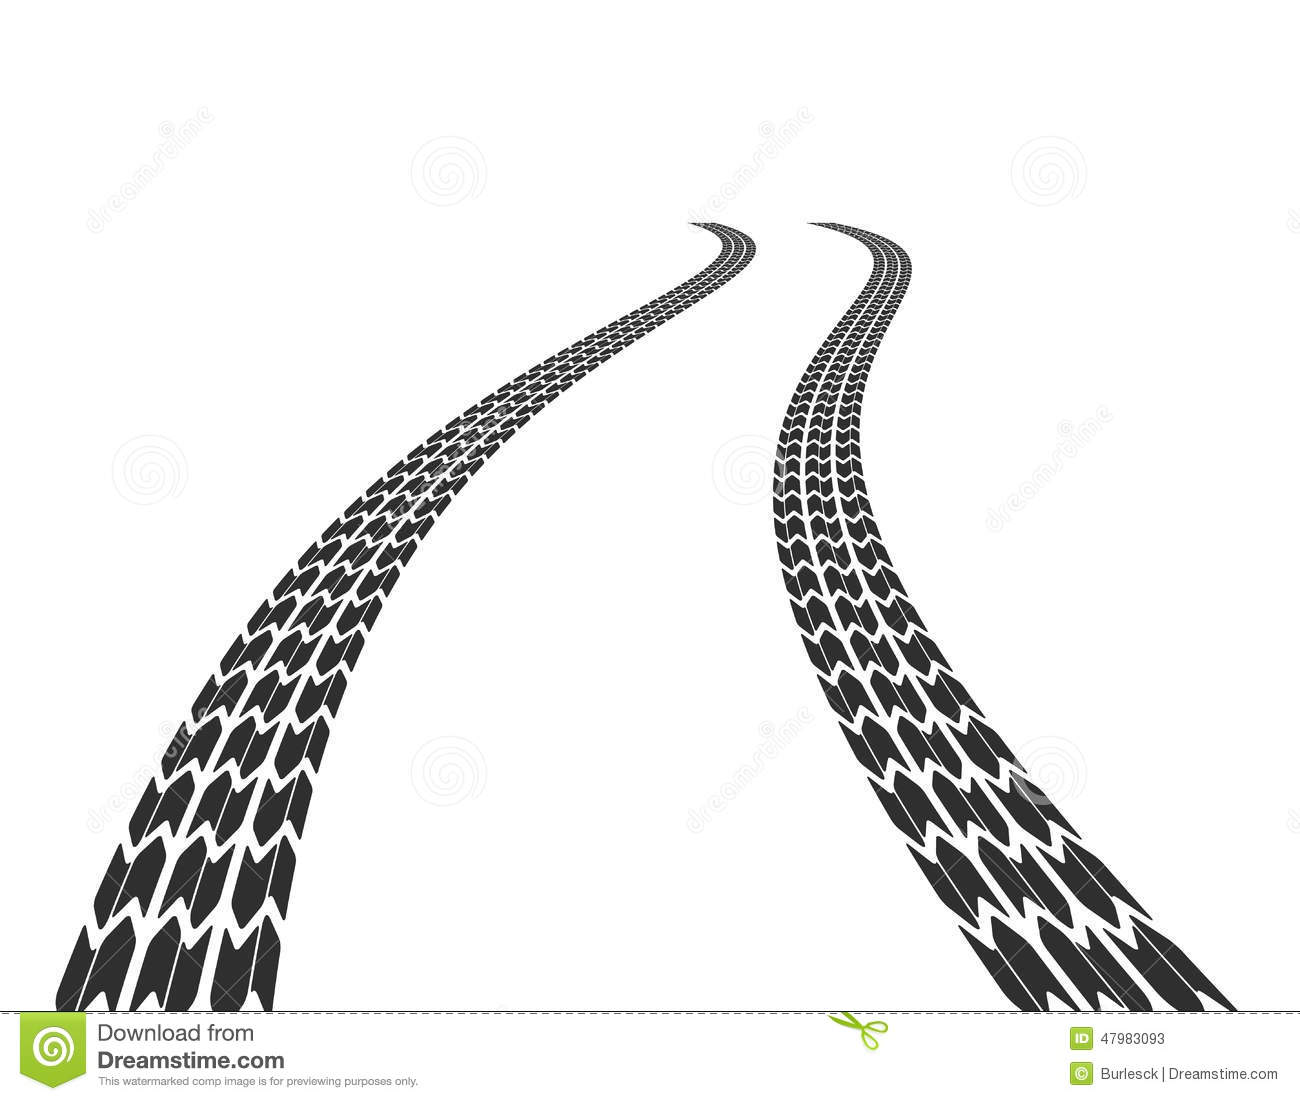 Traces Of Tires On Road Stock Vector